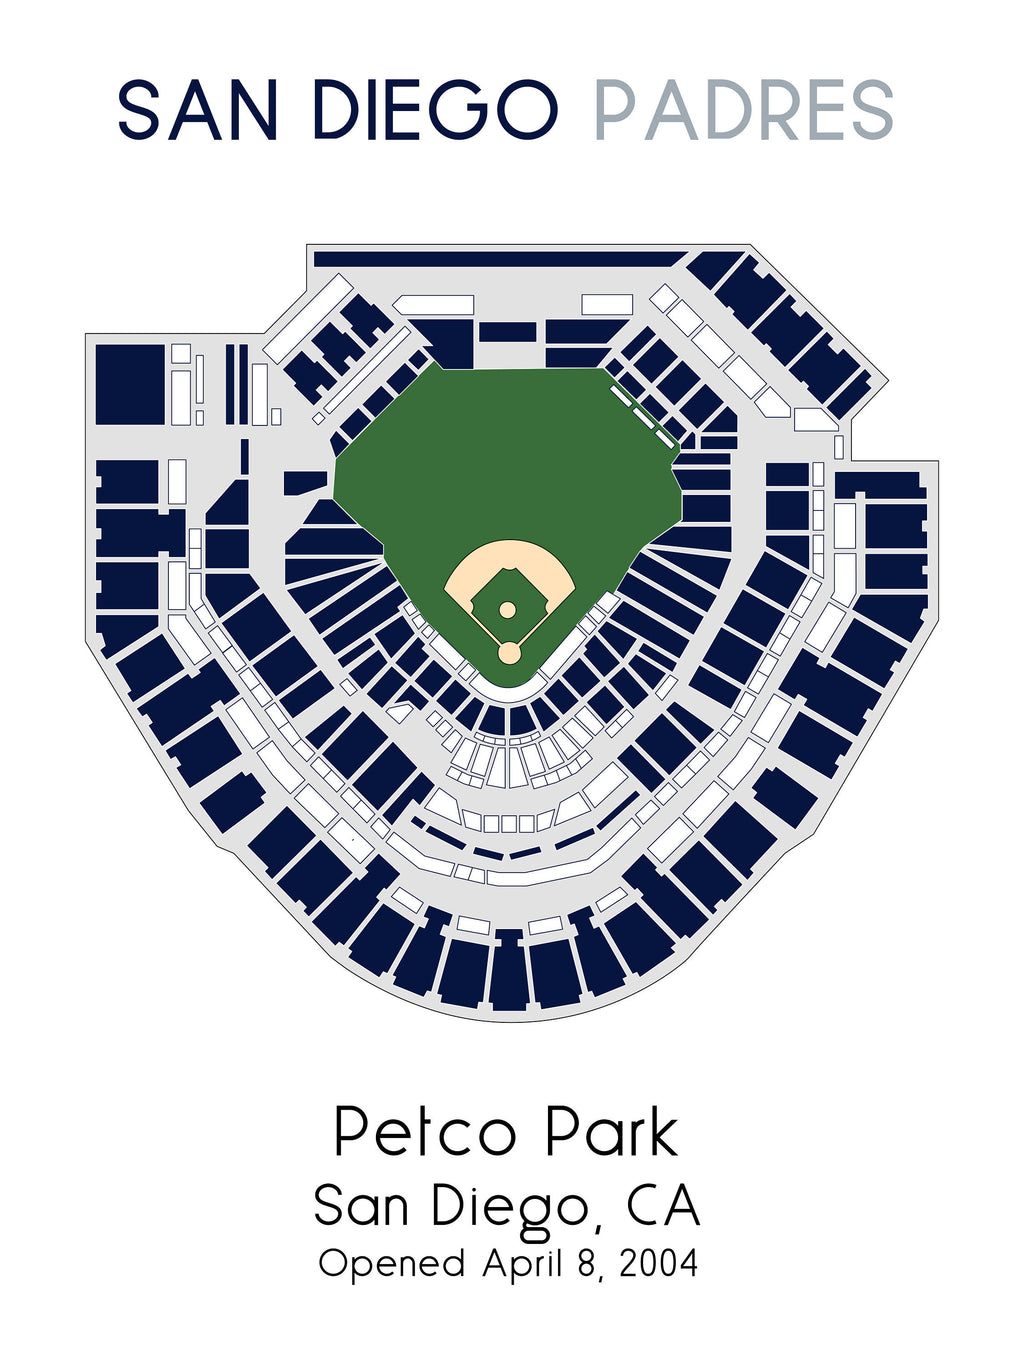 San Diego Padres Petco Park, MLB Stadium Map, Ballpark Map, Baseball Stadium Map, Gift for Him, Stadium Seating Chart, Man Cave